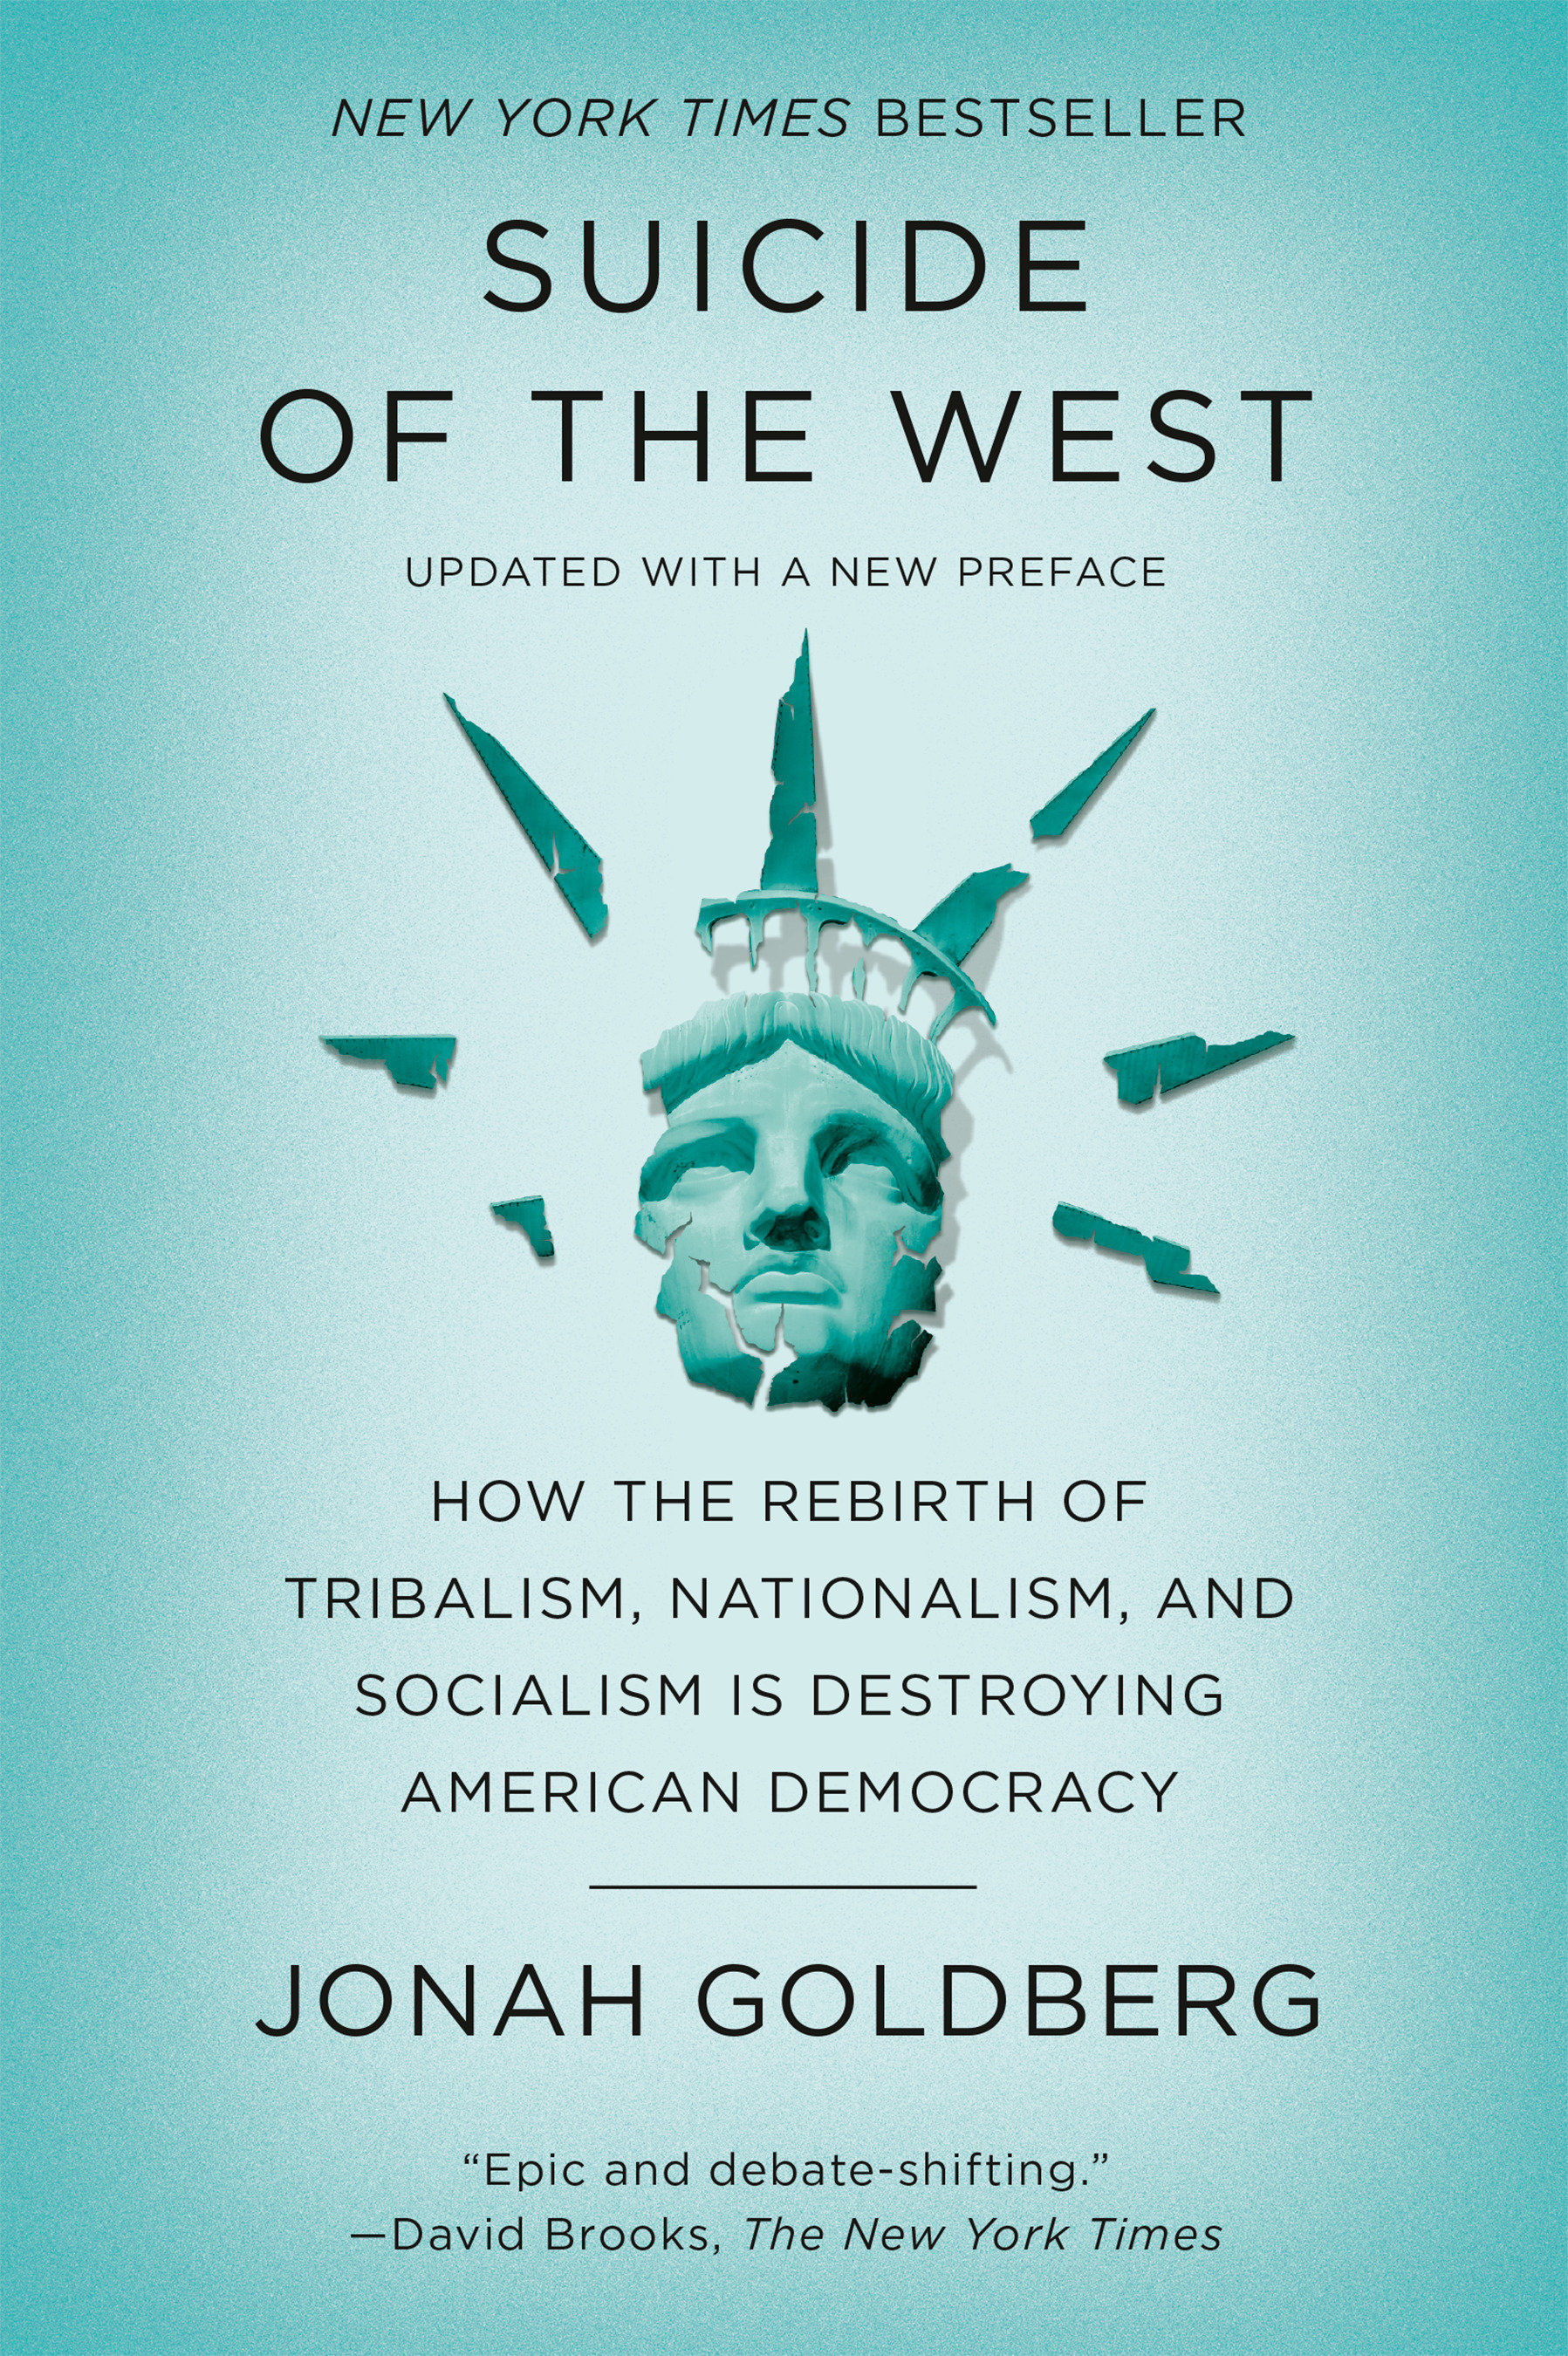 Suicide of the west : How the Rebirth of Tribalism, Populism, Nationalism, and Identity Politics is Destroying American Democracy